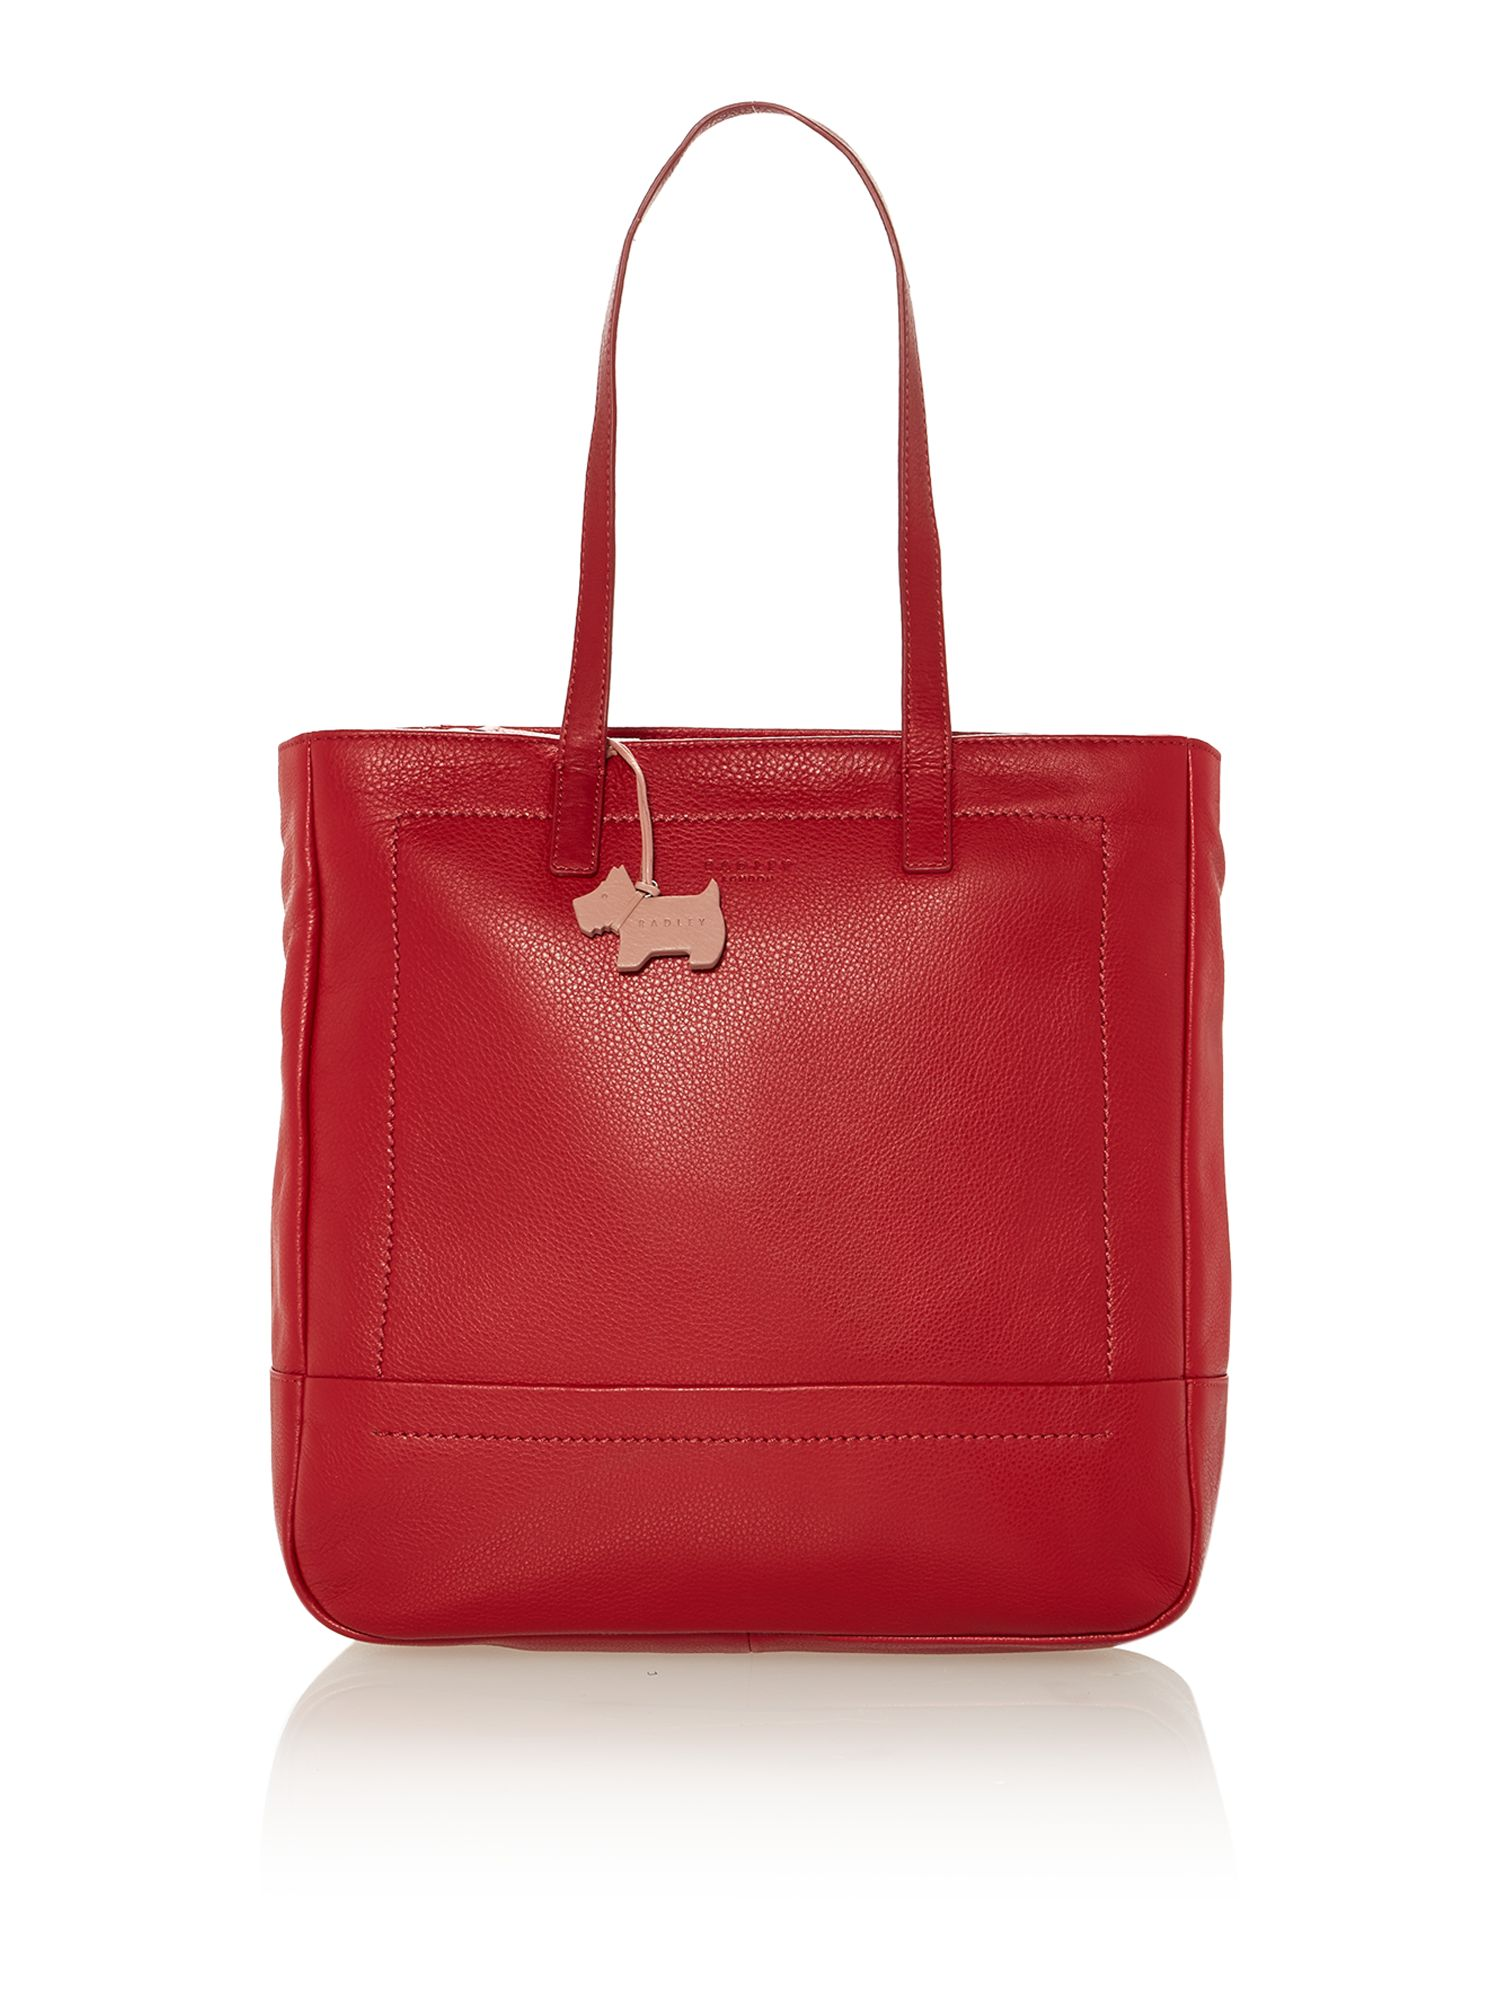 Finsbury large red ziptop ns tote leather bag